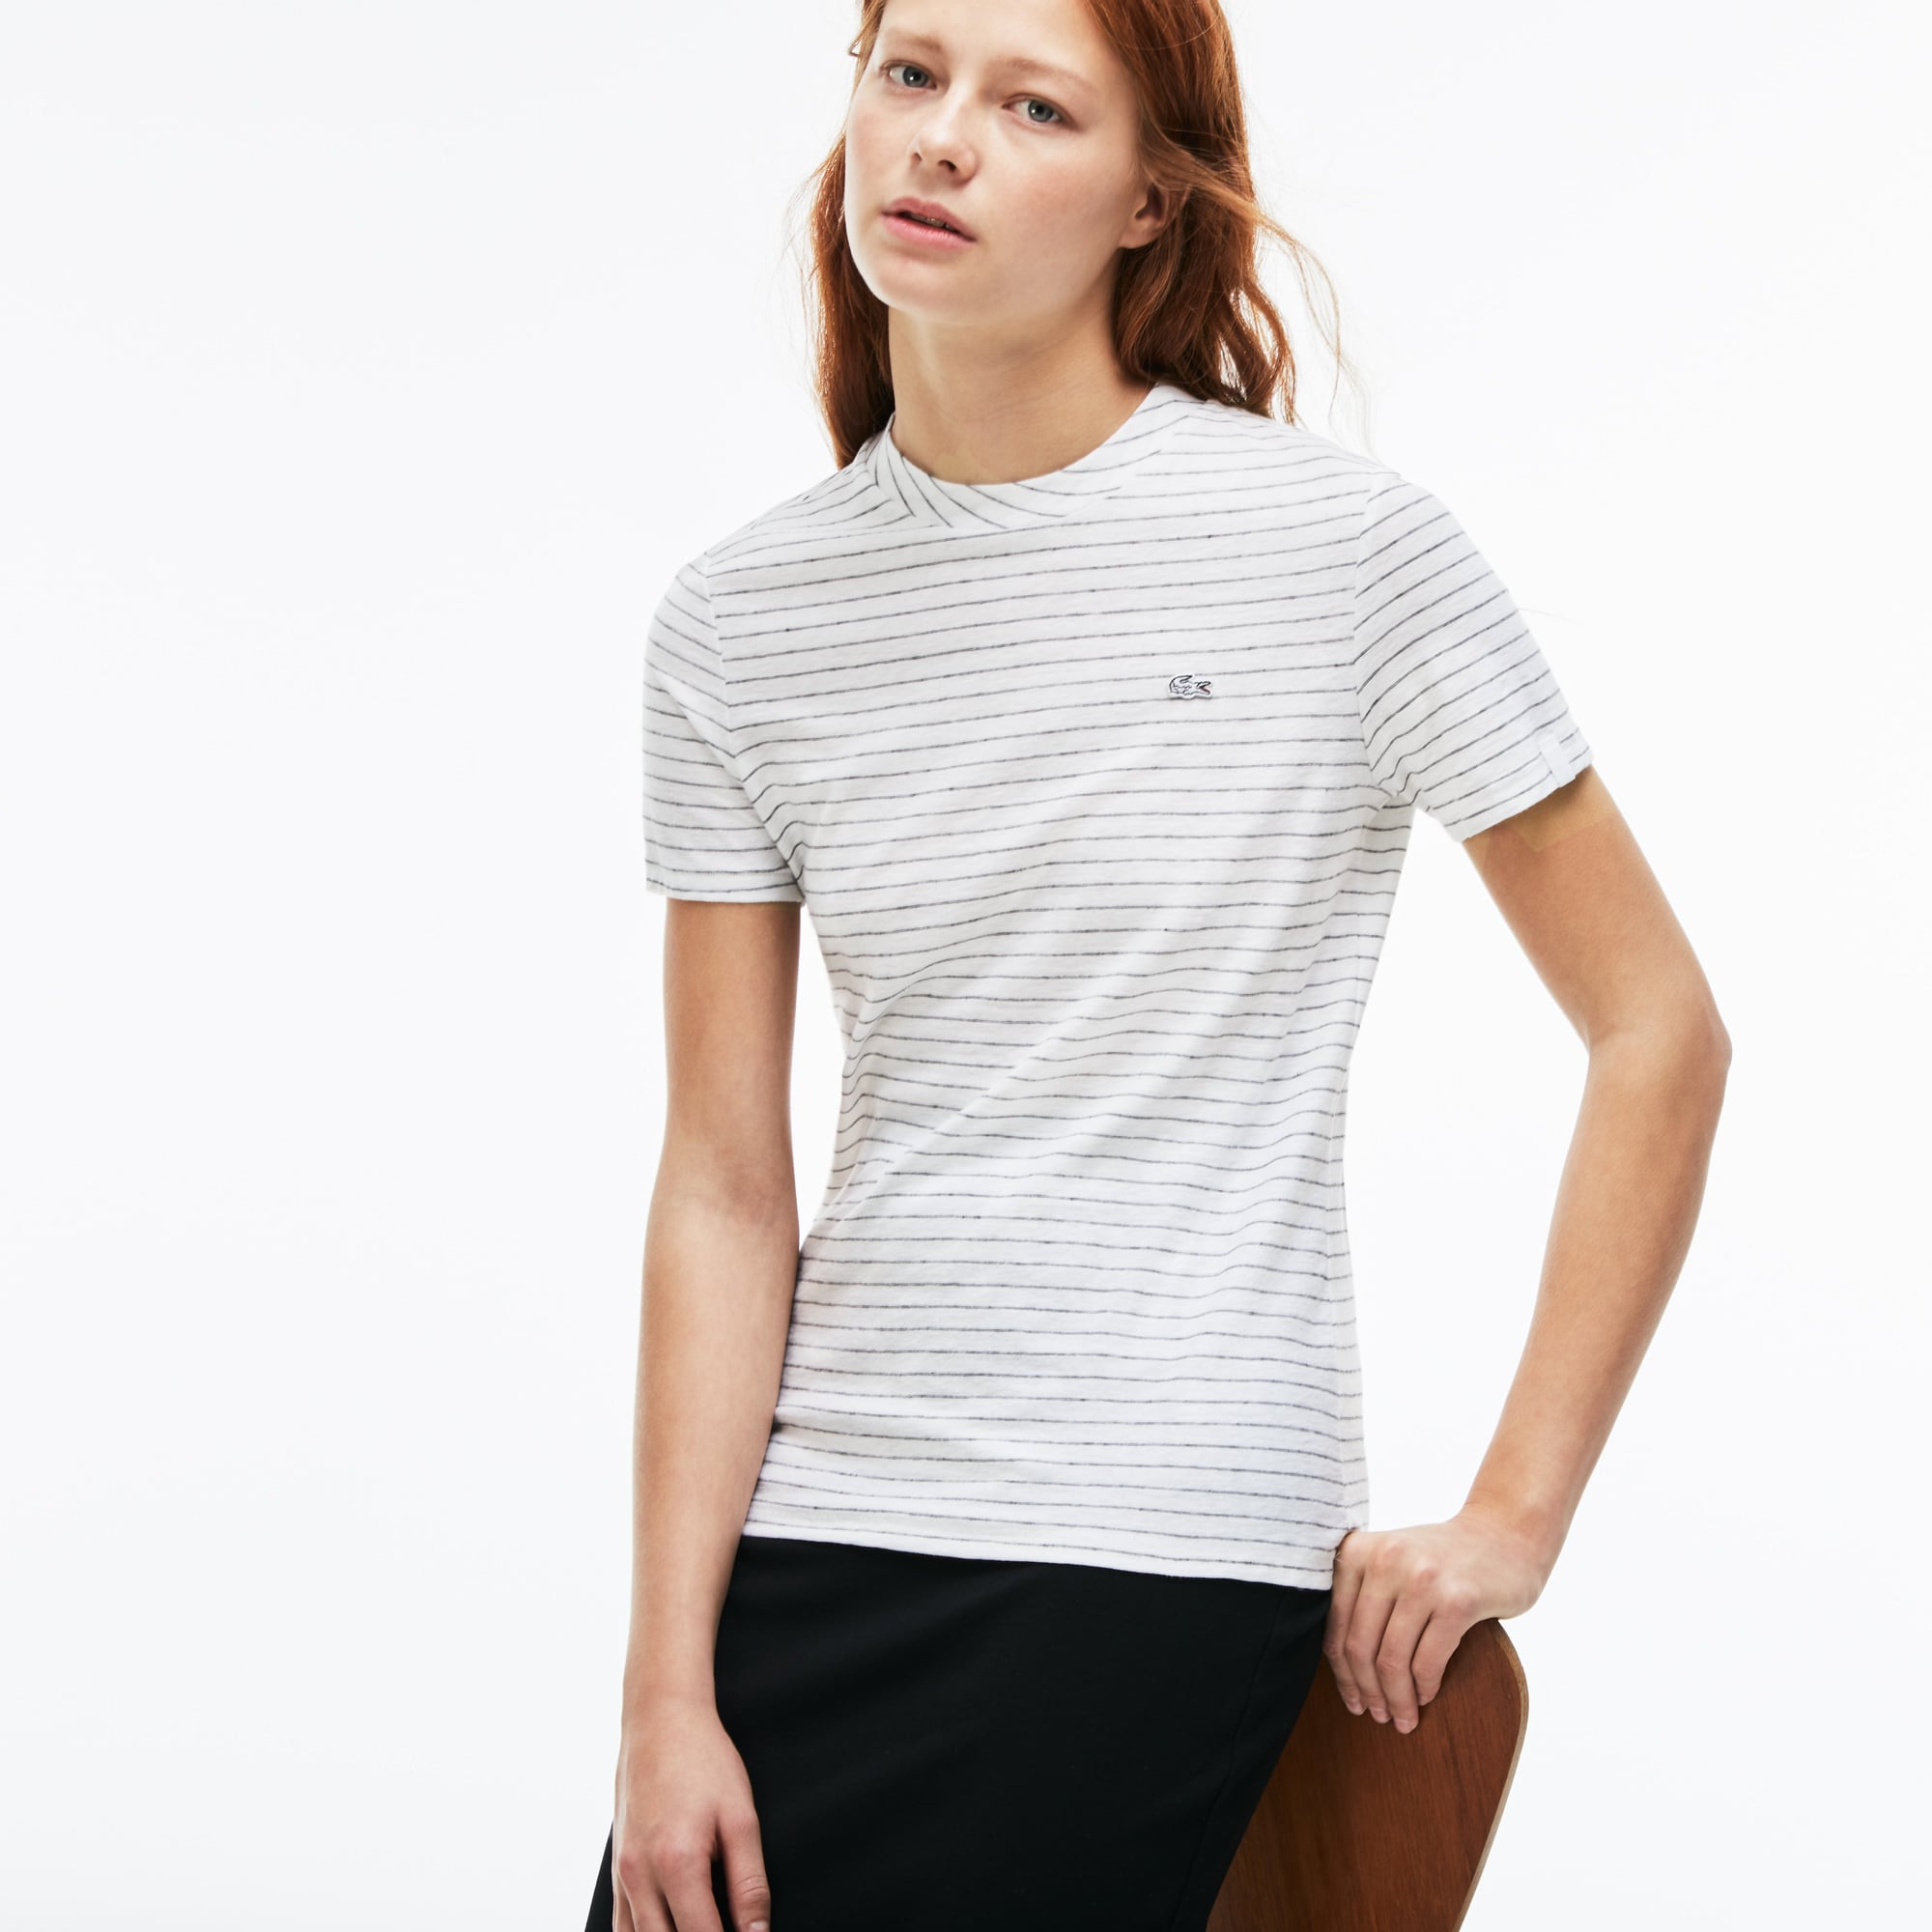 Camiseta Mujer Rayas Slim Fit Lacoste Live